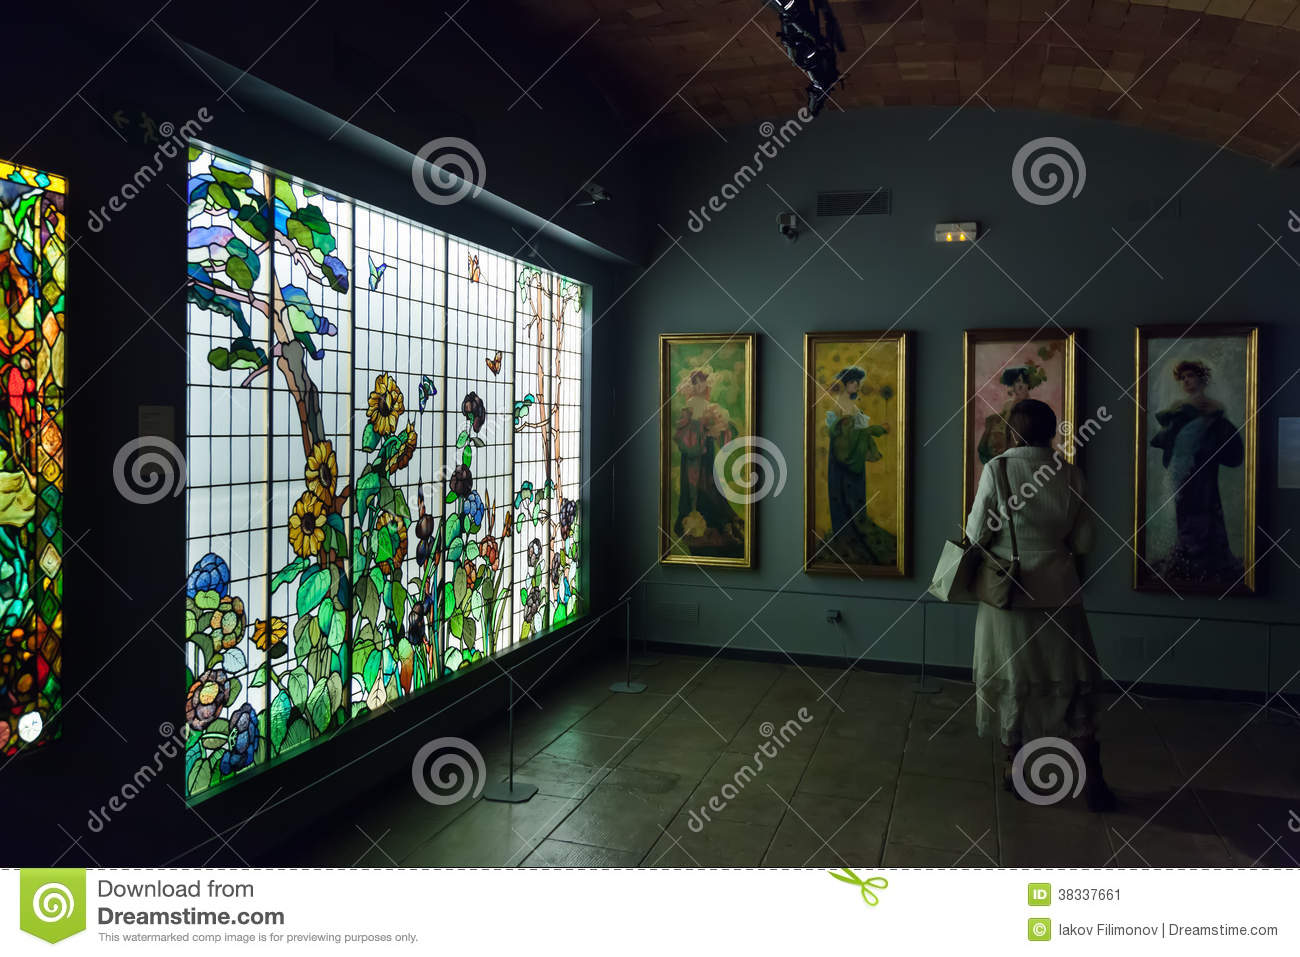 https://thumbs.dreamstime.com/z/stained-glass-window-interior-museum-catalan-modernism-barcelona-spain-january-modernisme-barcelona-catalonia-38337661.jpg